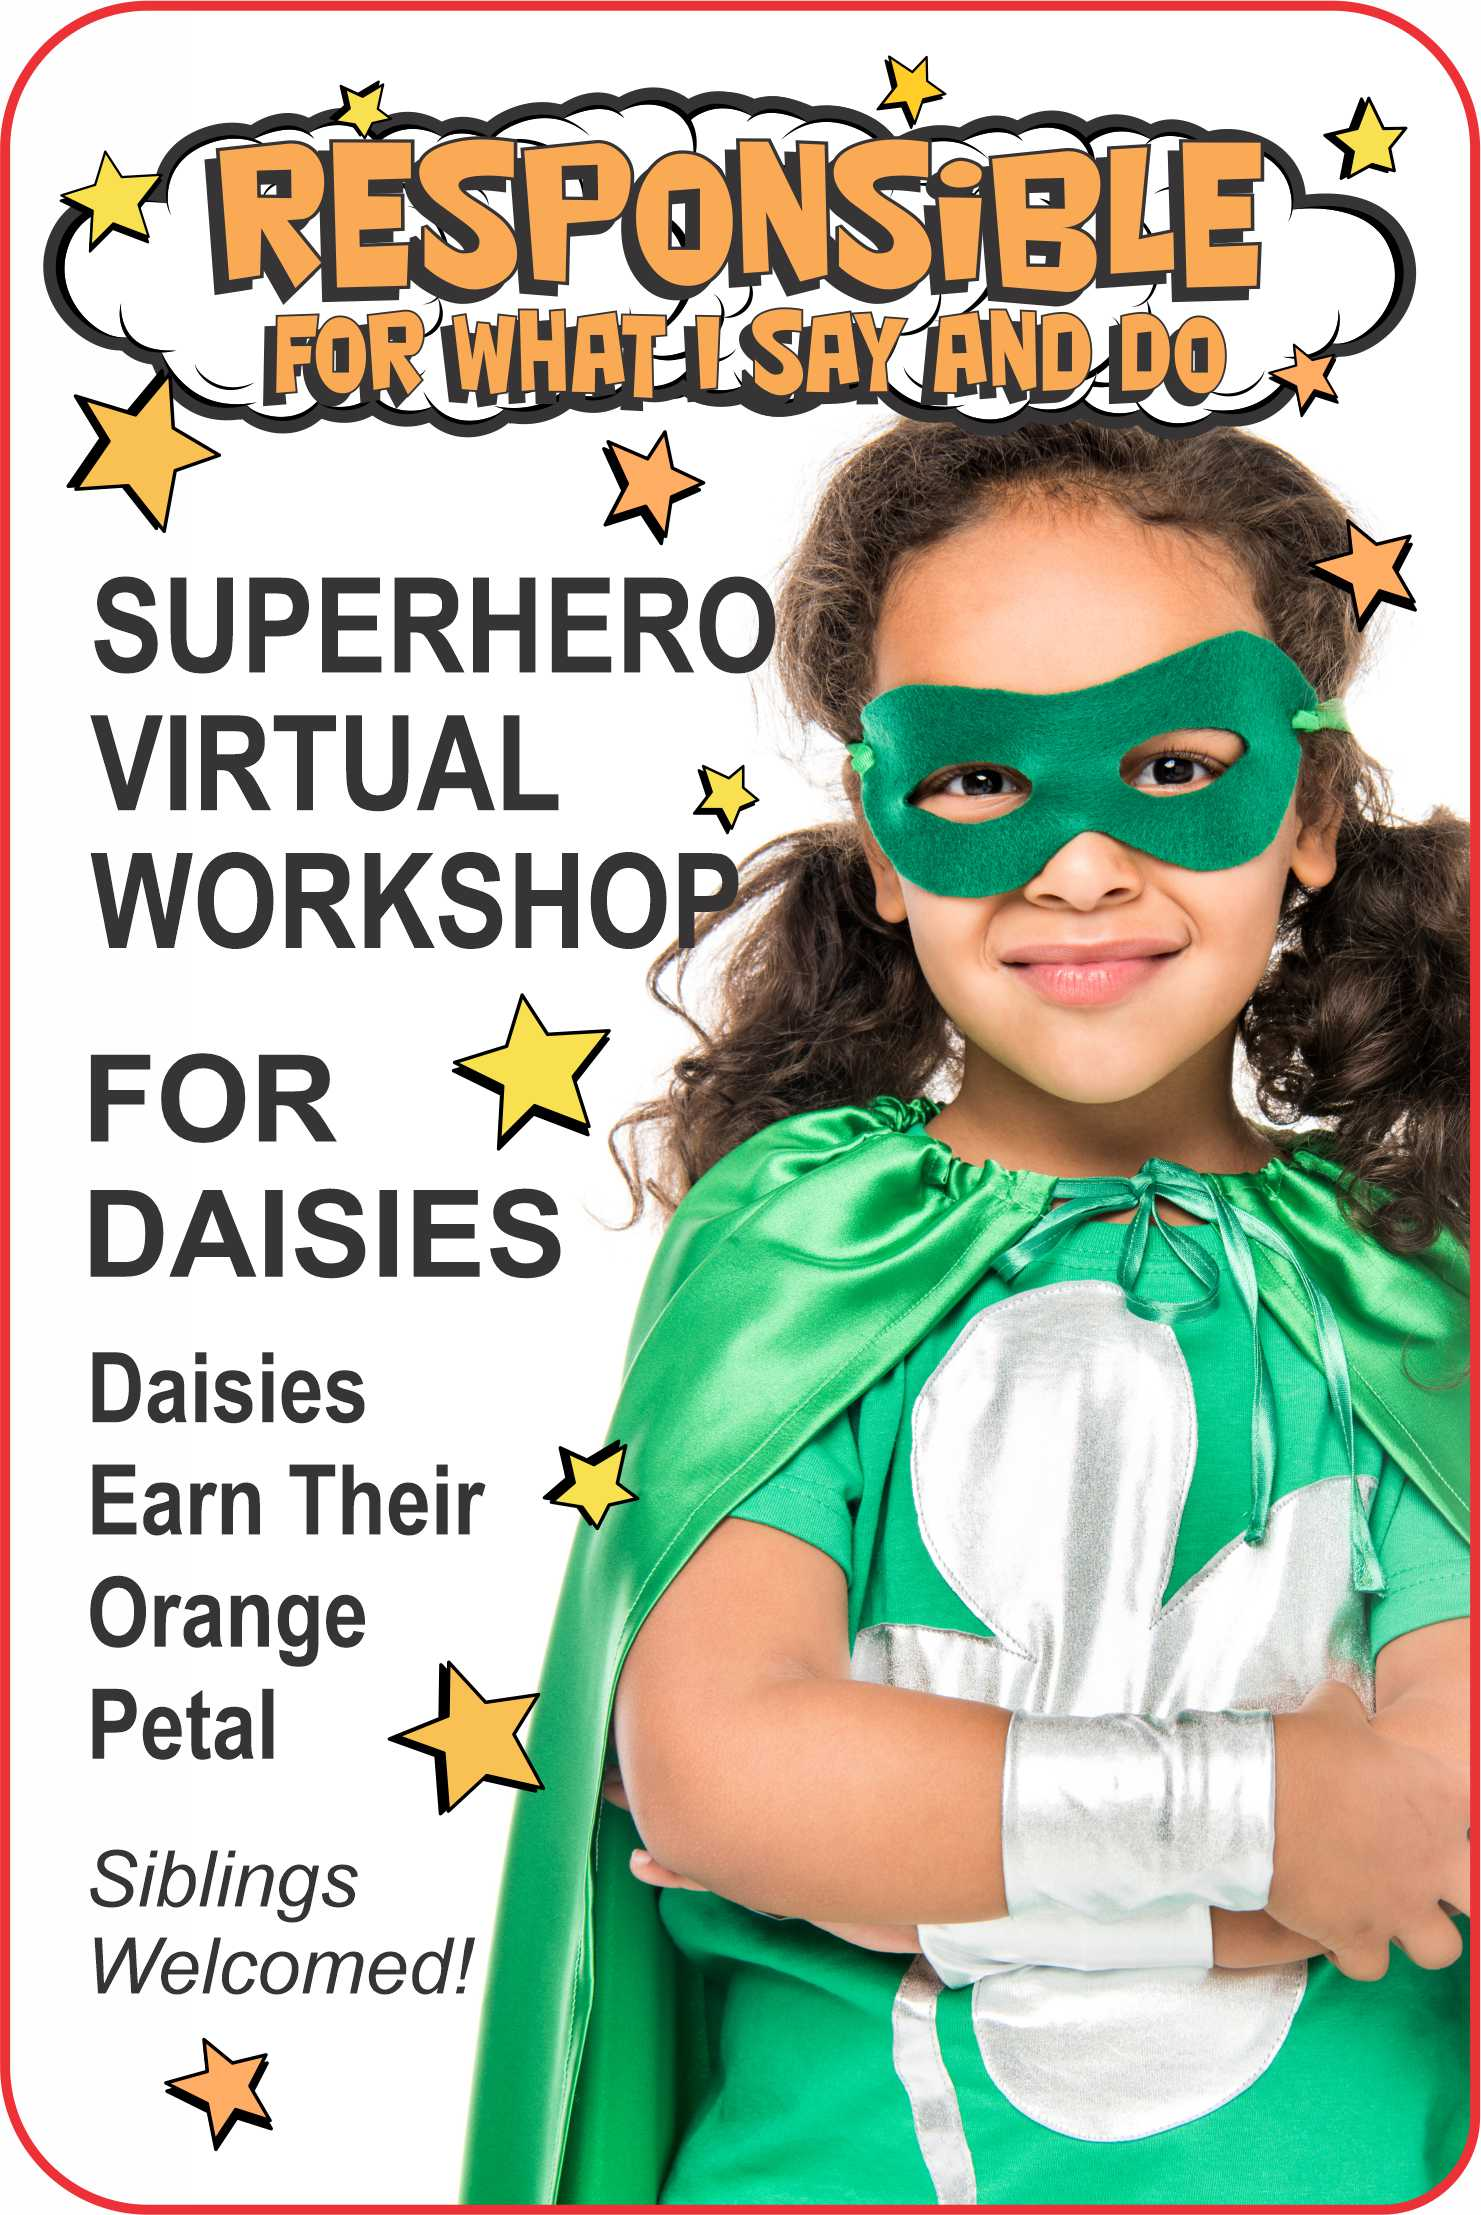 Join us for our Responsible Petal virtual workshop! Daisies earn their orange petal! Siblings welcome! #makingfriends #responsible #virtualworkshop #onlineclass #superhero #daisy #daisies #daisypetal #girlscouts #gspatches via @gsleader411